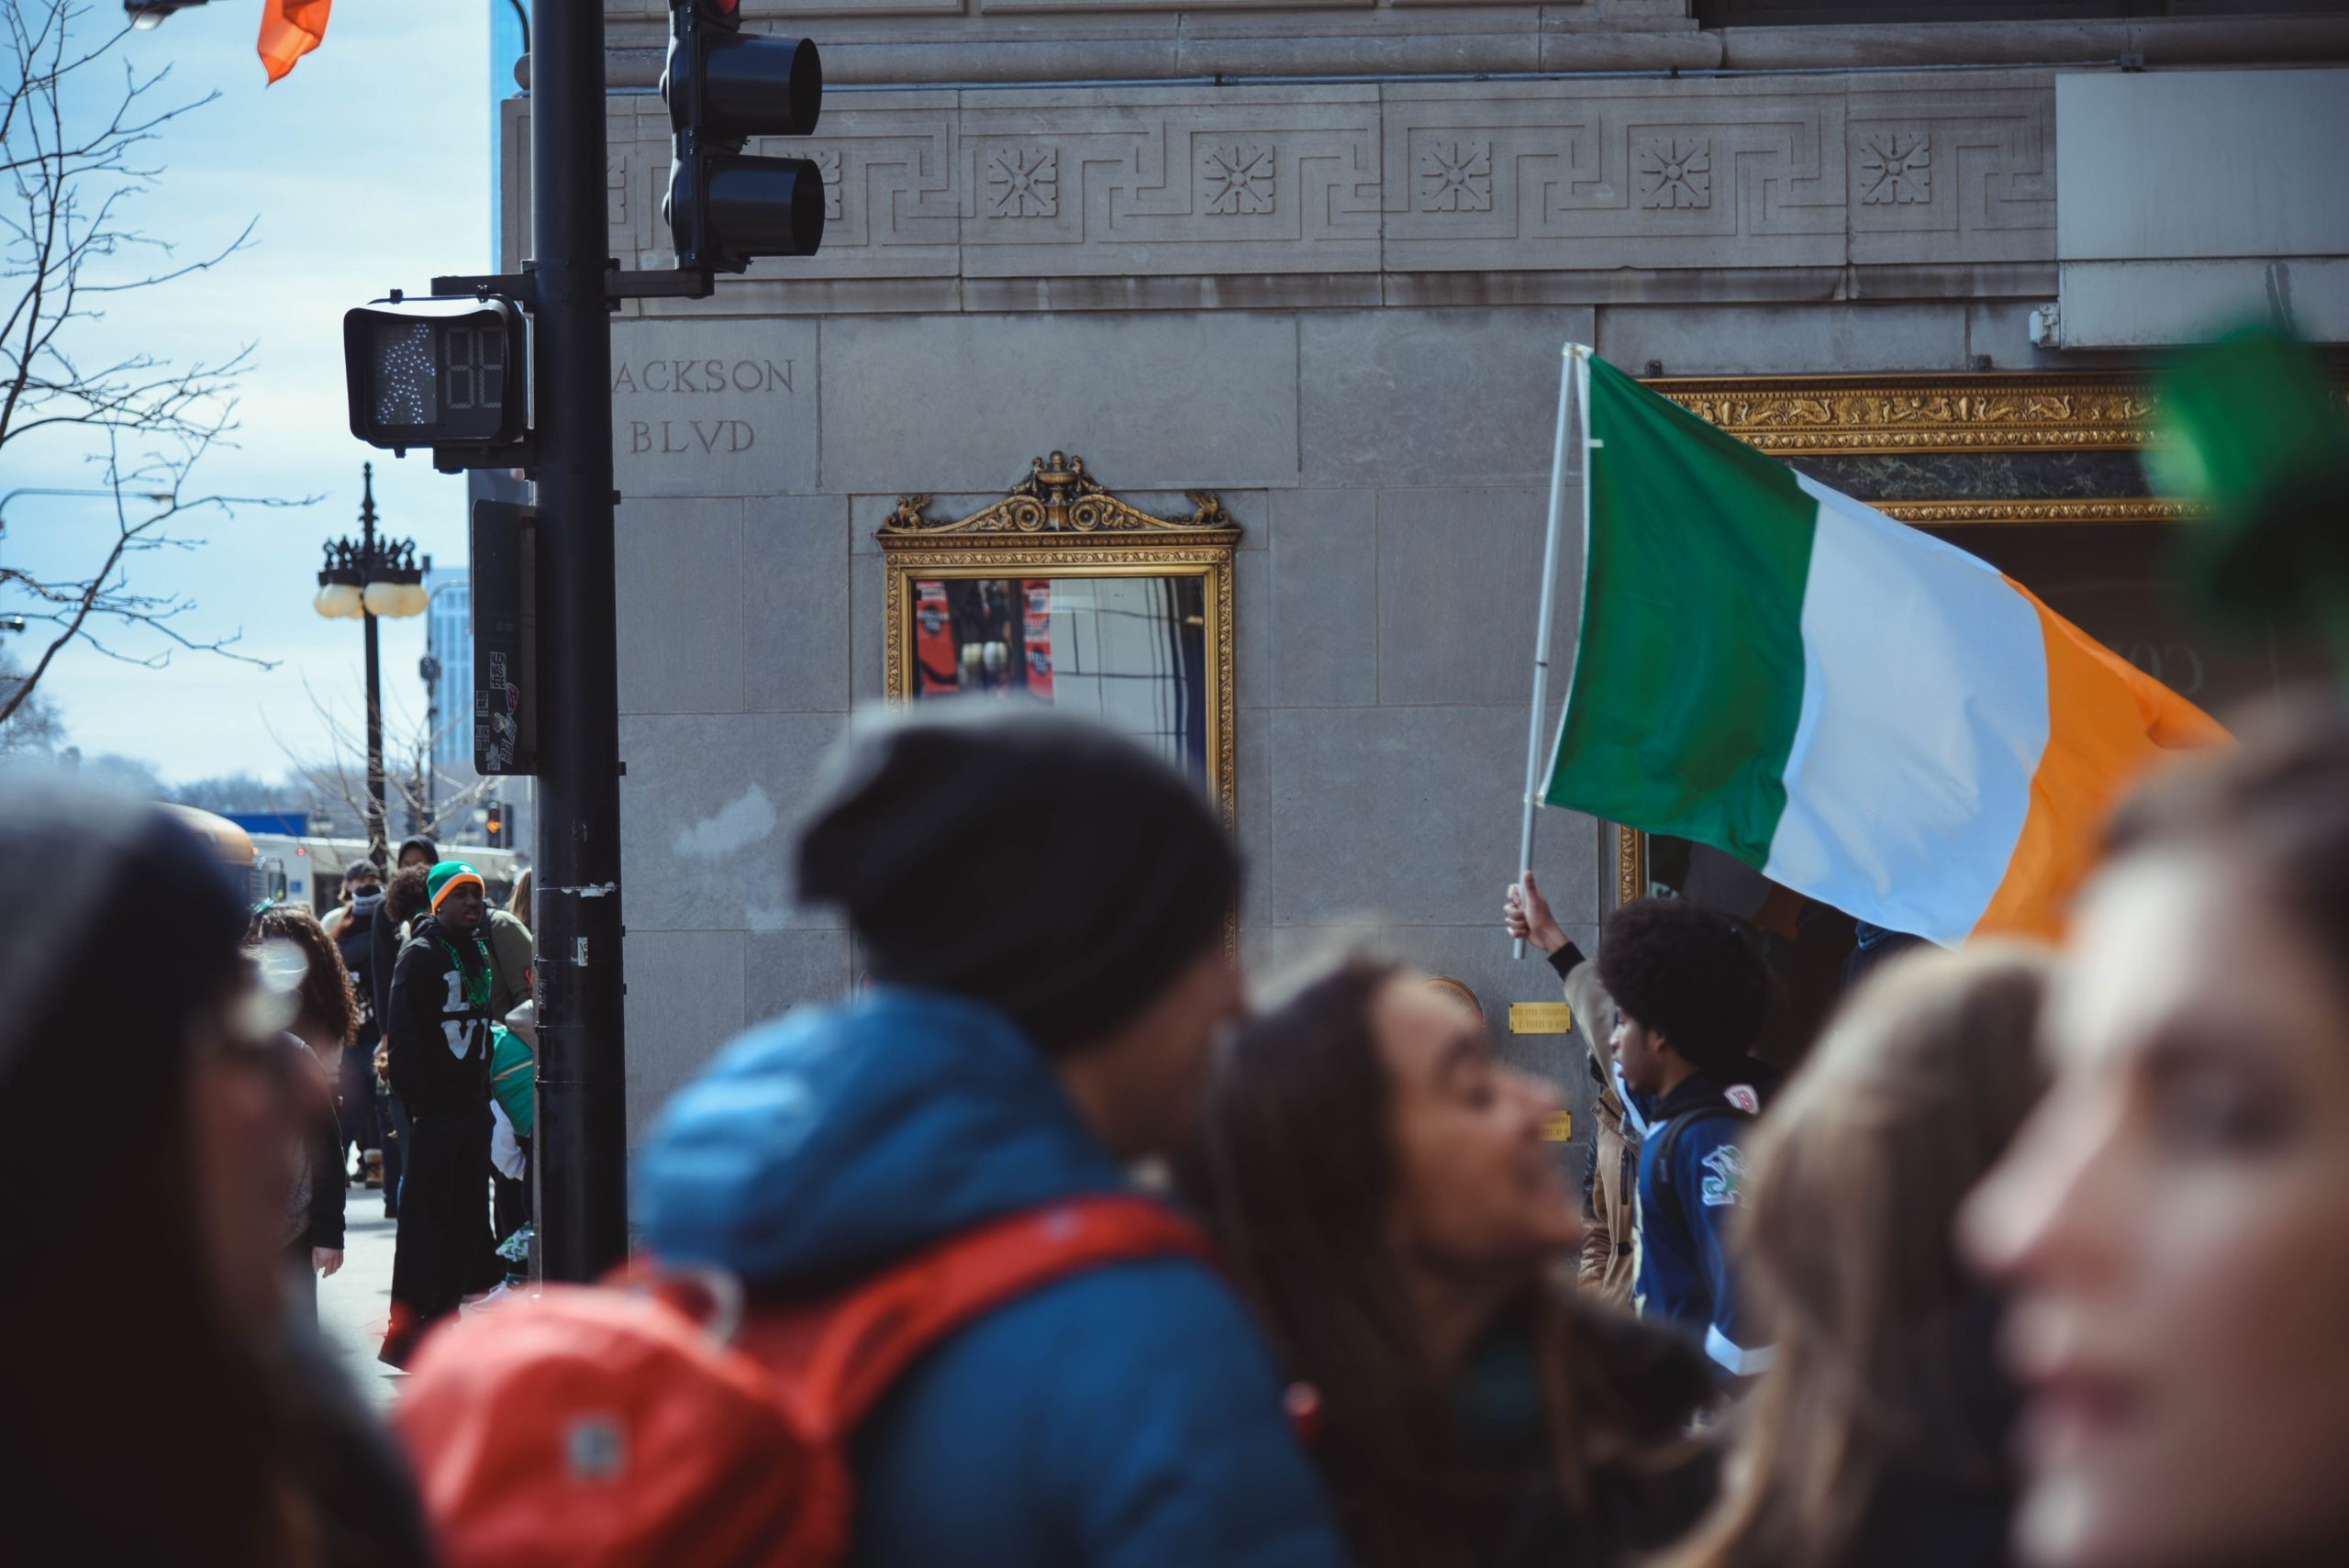 Crowd of people with Irish flag visible in background